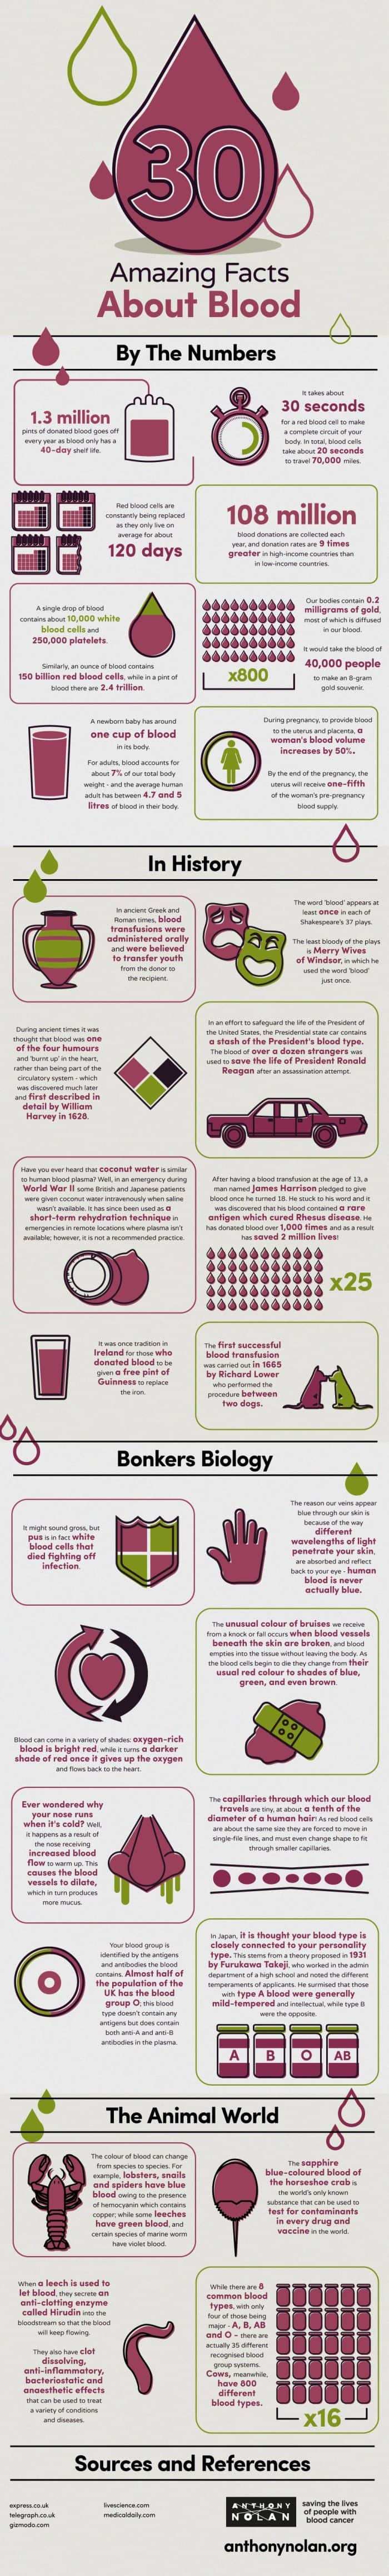 Infographic with 30 interesting facts about blood.